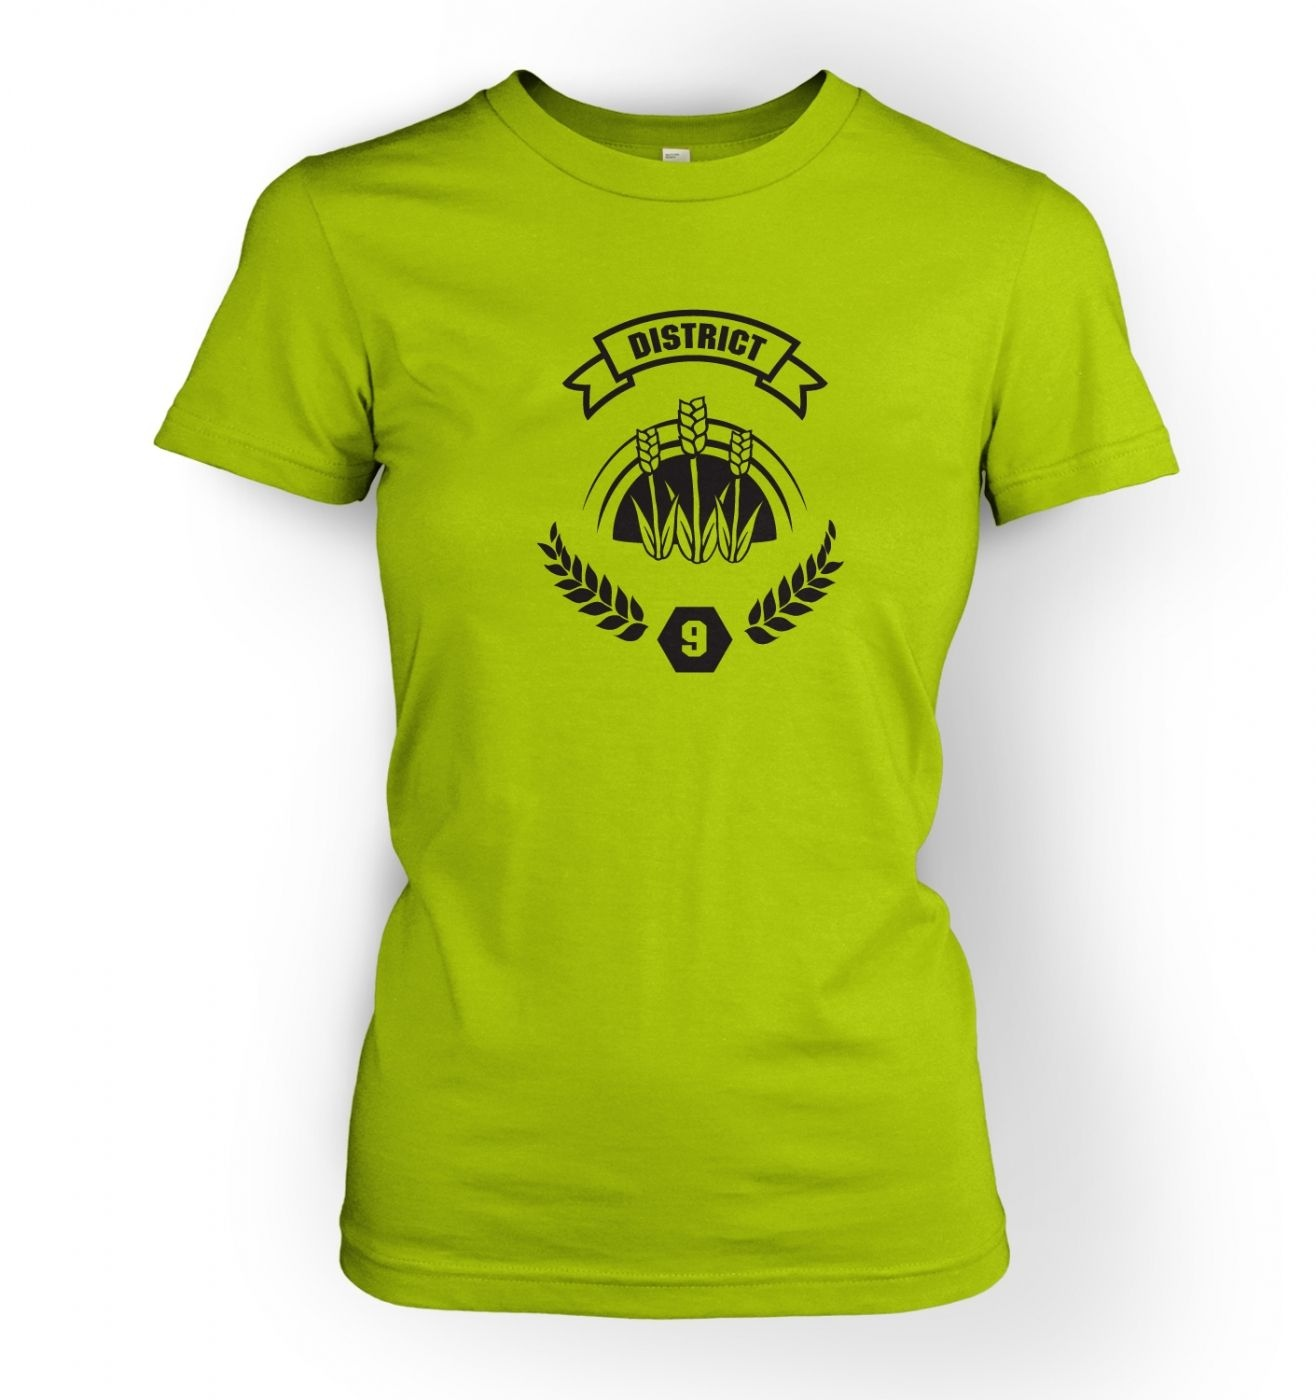 District 9 women's t-shirt